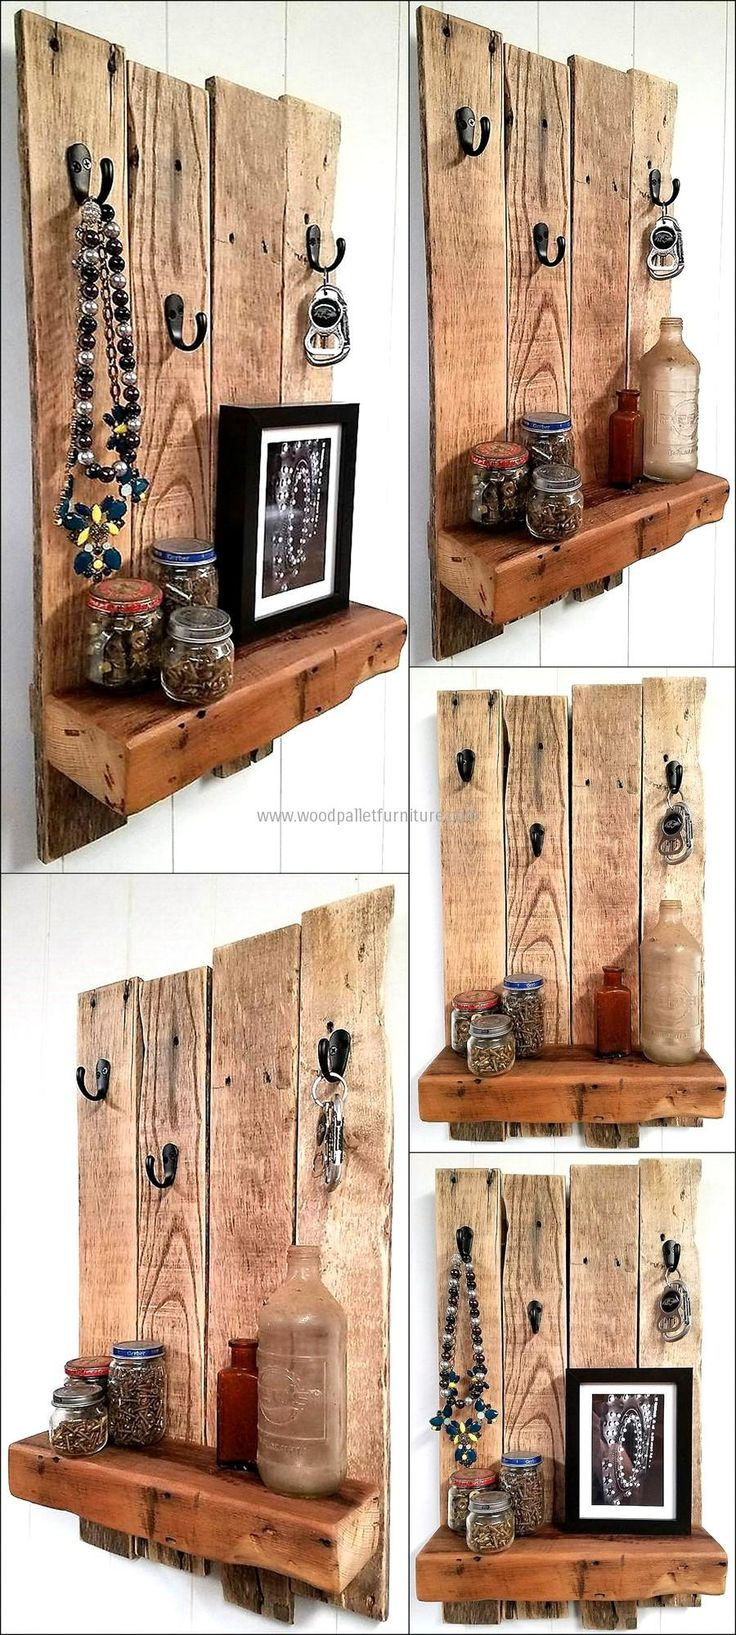 best 25 wooden pallet crafts ideas on pinterest pallet diy decor pallet projects and wooden. Black Bedroom Furniture Sets. Home Design Ideas